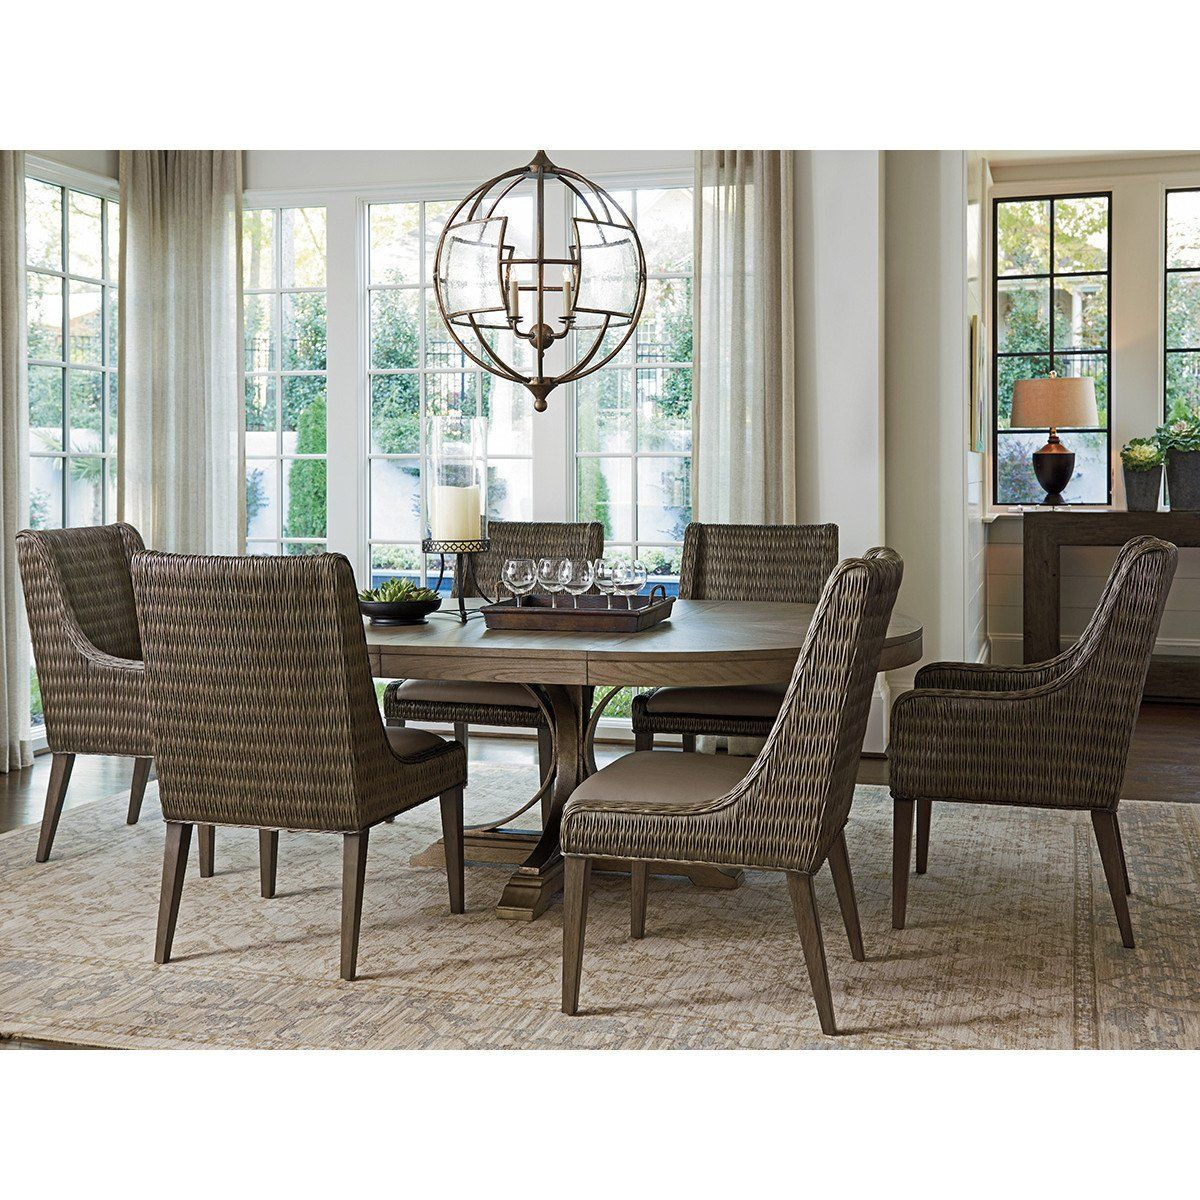 Tommy Bahama Cypress Point Brandon Side Chair Dining Room Sets Dining Room Furniture Furniture Dining Table